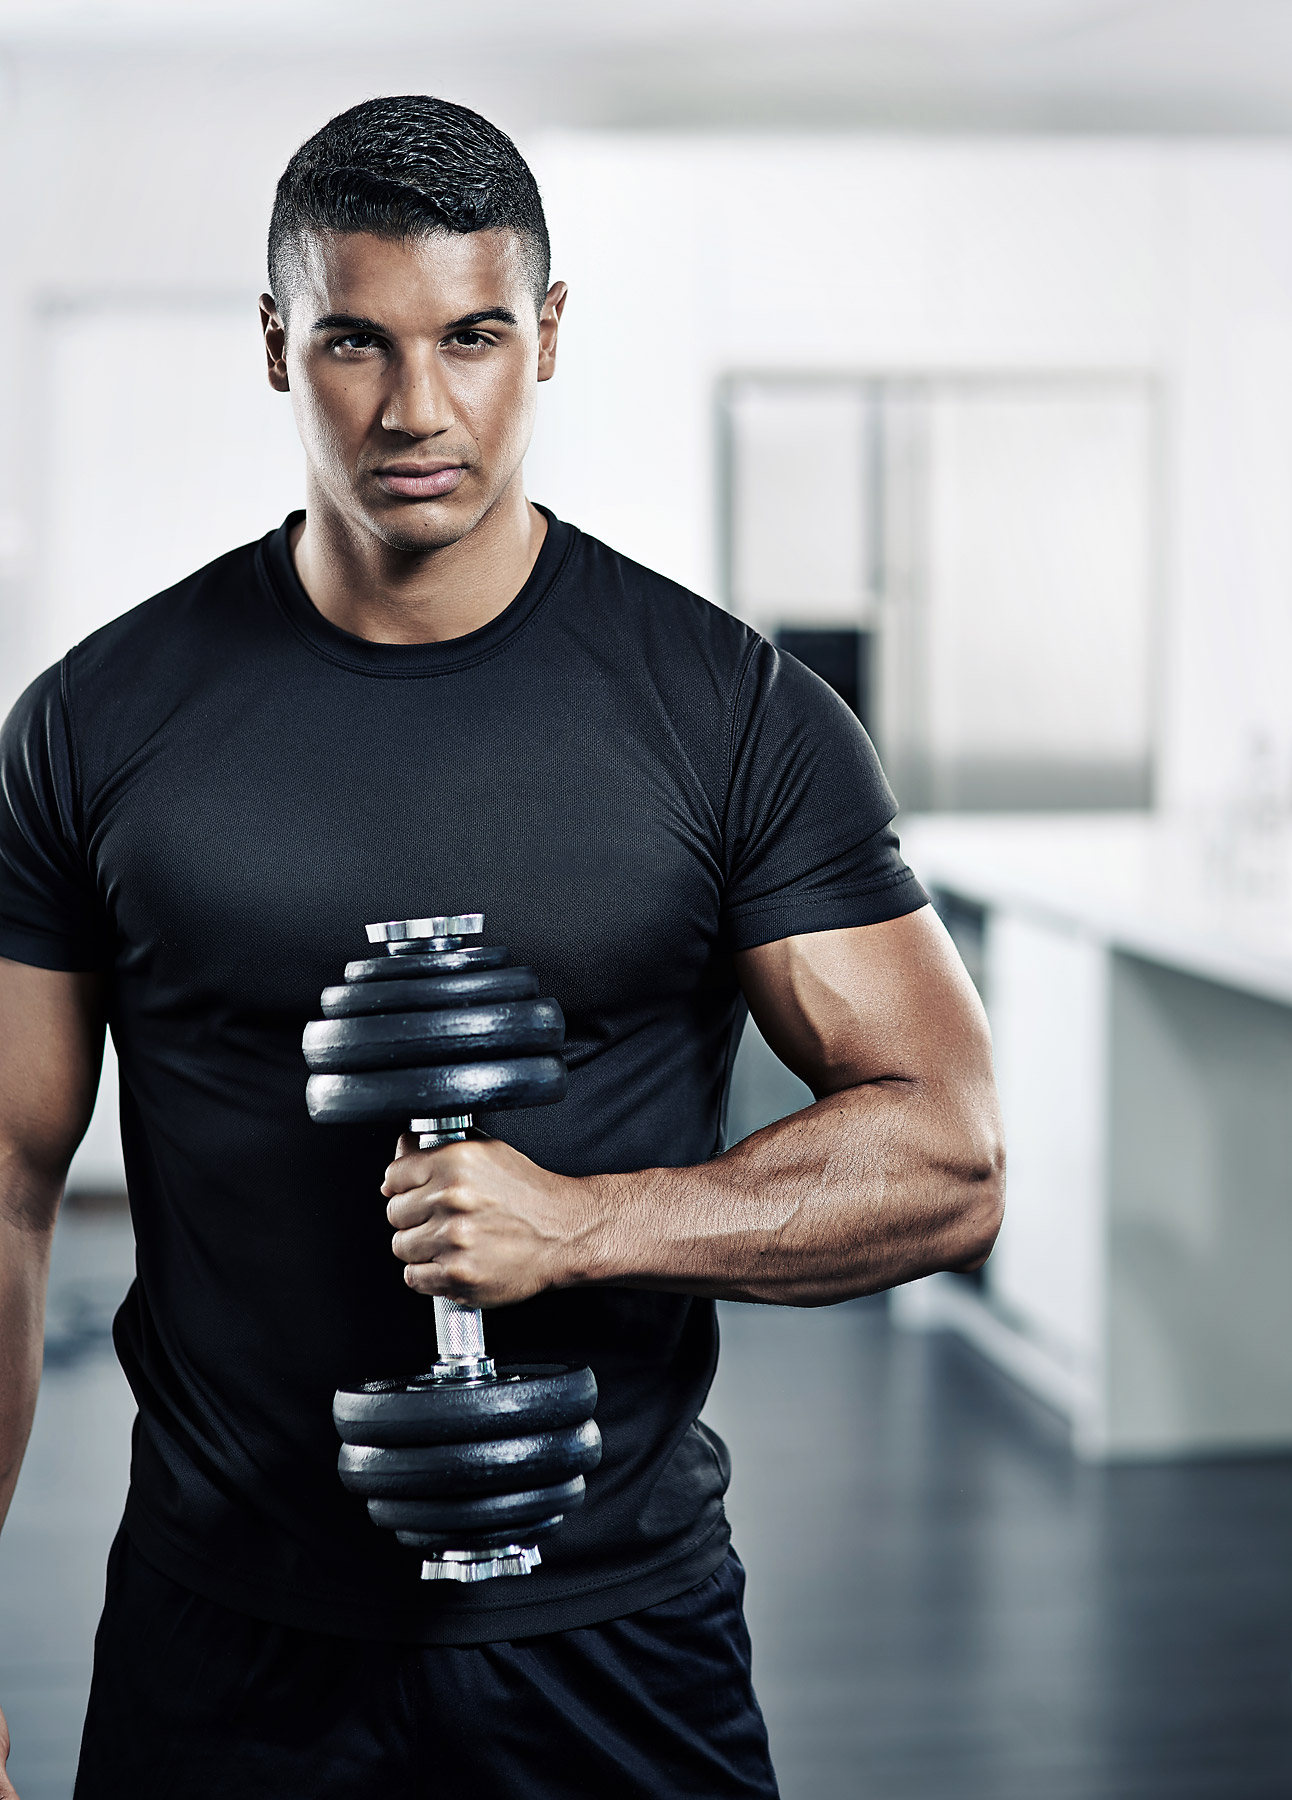 Muscular man holding a York dumbell